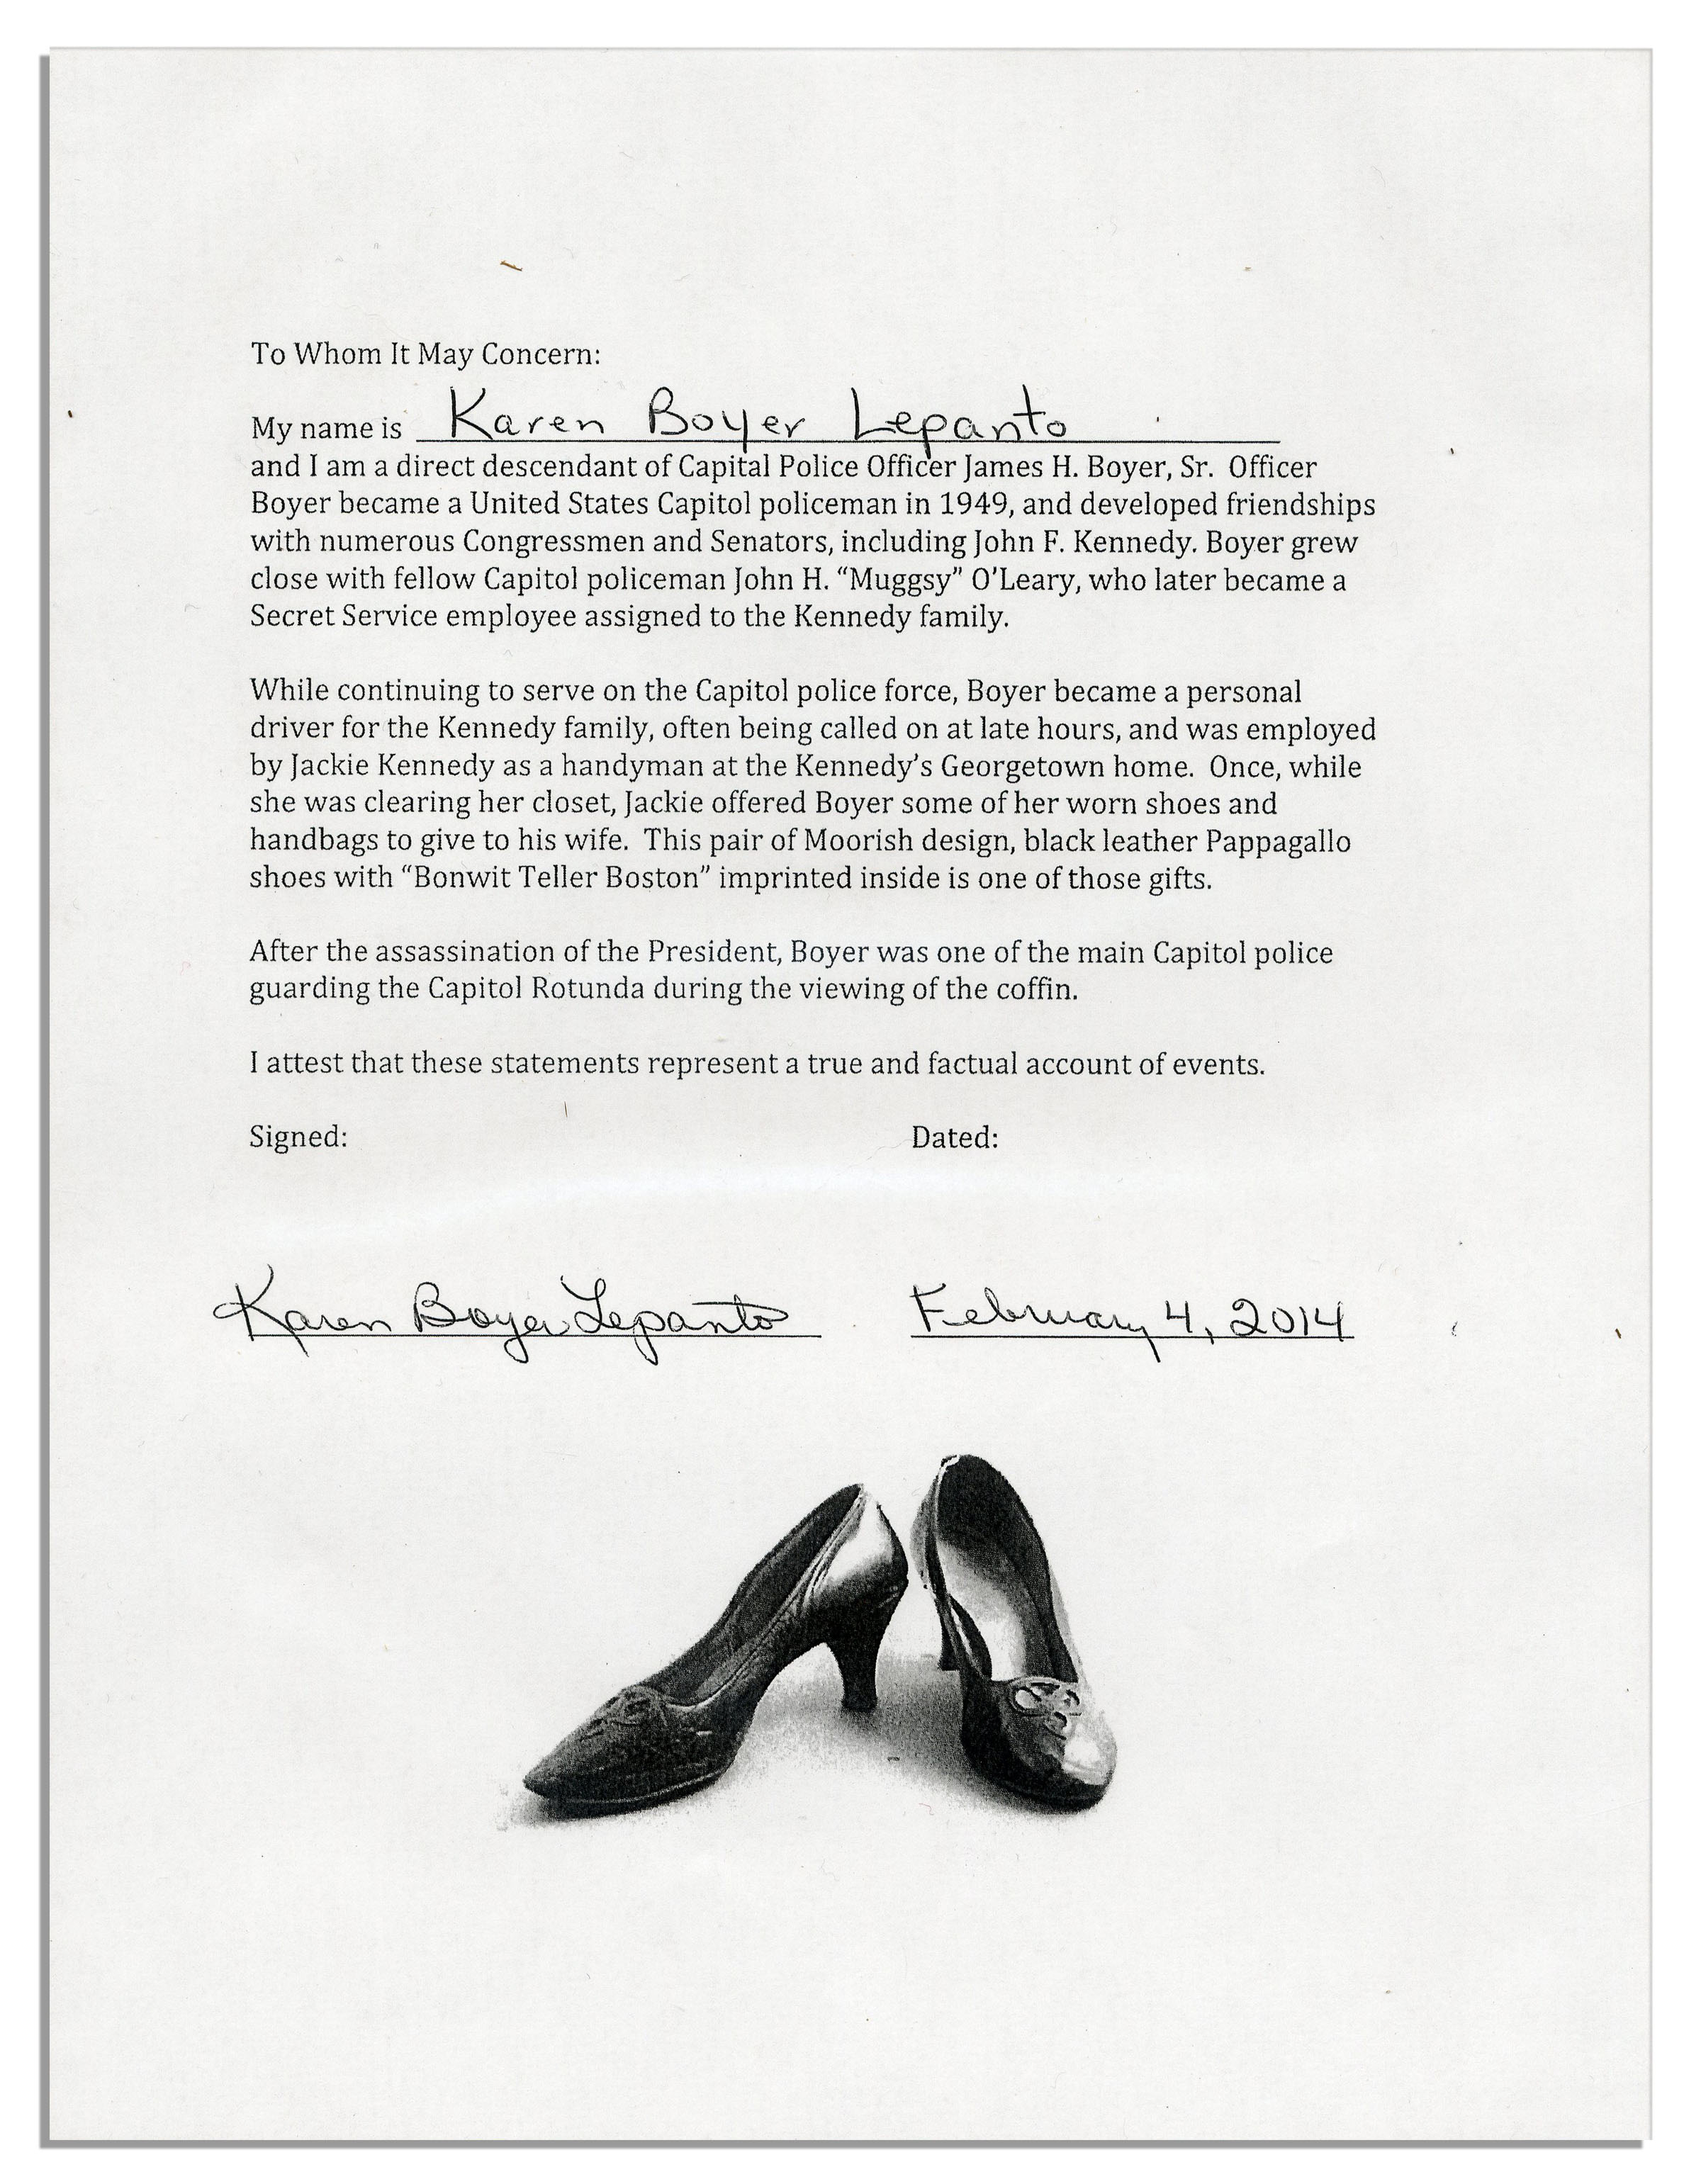 Jackie Kennedy Shoes: Jackie Kennedy Personally Owned & Worn Shoes